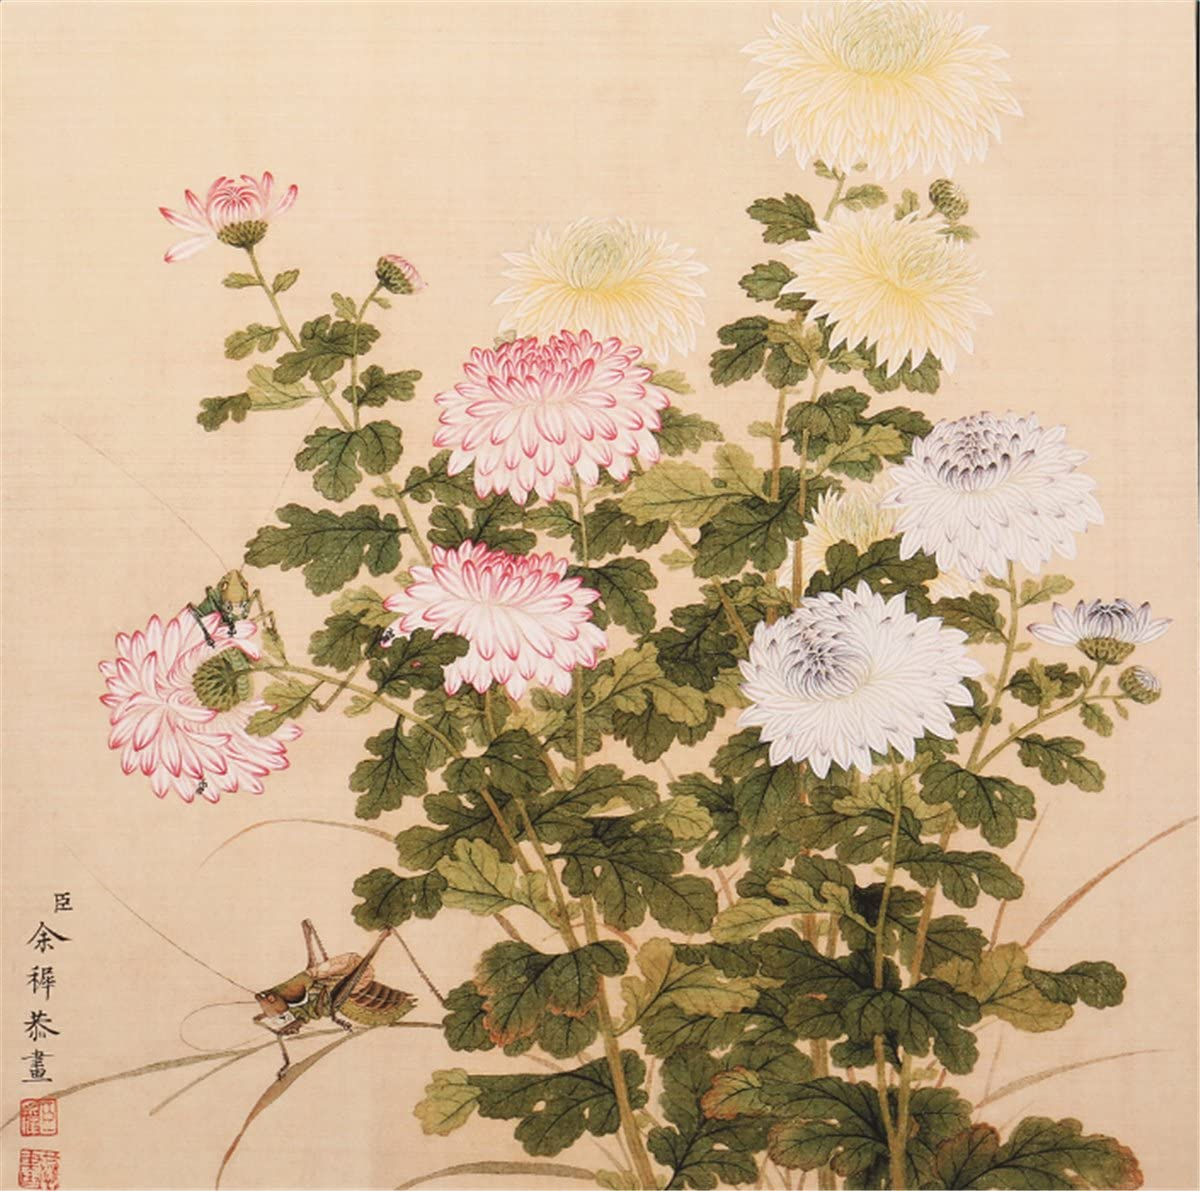 INKWASH Nature Flower Art Chinese Painting Wall Decor Yellow White Chrysanthemum Flower Paintings for Modern Home Living Room Bedroom Wall Without Framed 19